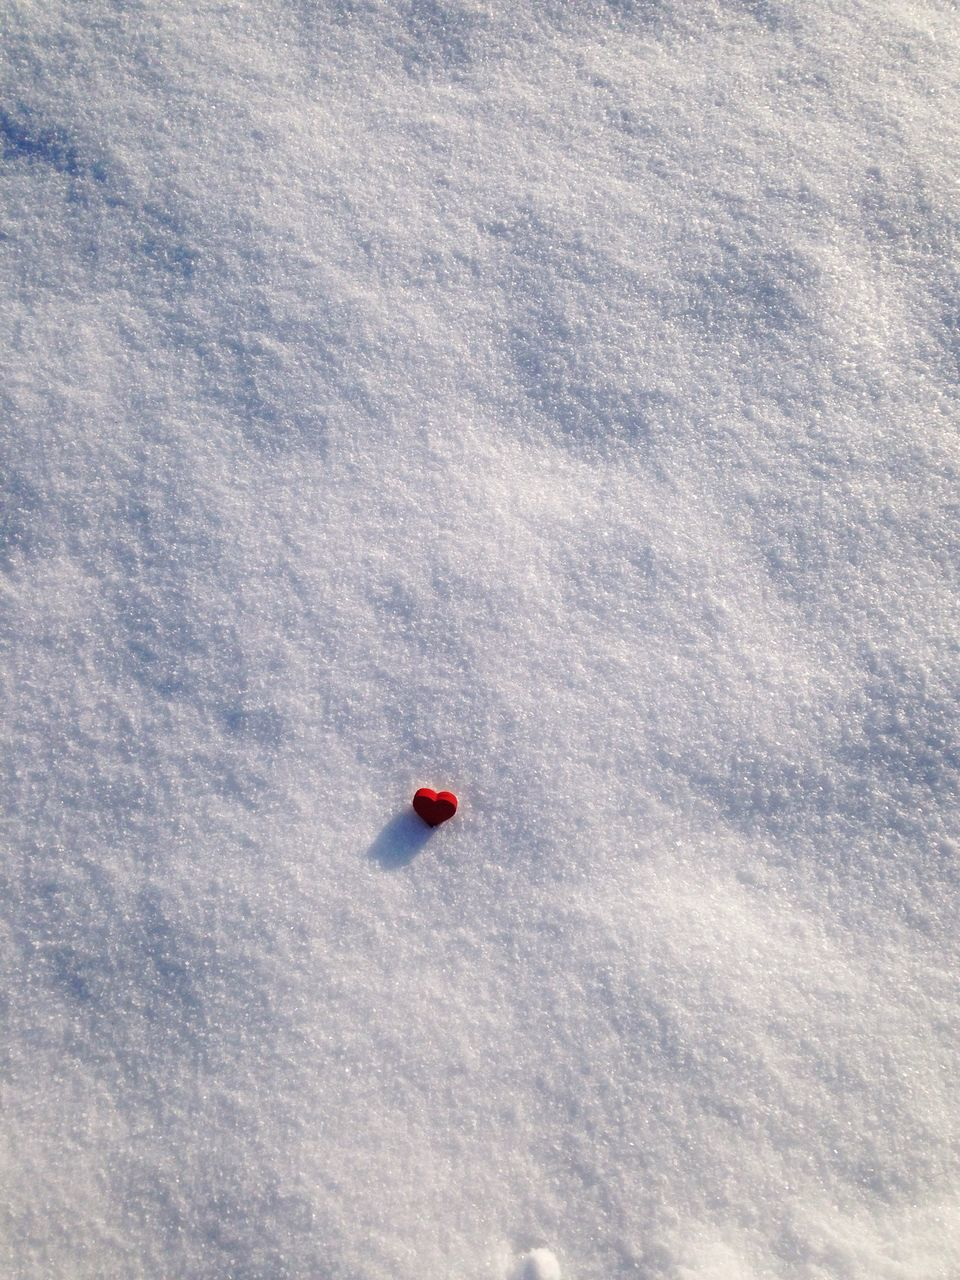 red, no people, day, nature, winter, beauty in nature, snow, land, mountain, cold temperature, high angle view, sky, scenics - nature, outdoors, white color, fruit, tranquility, covering, full frame